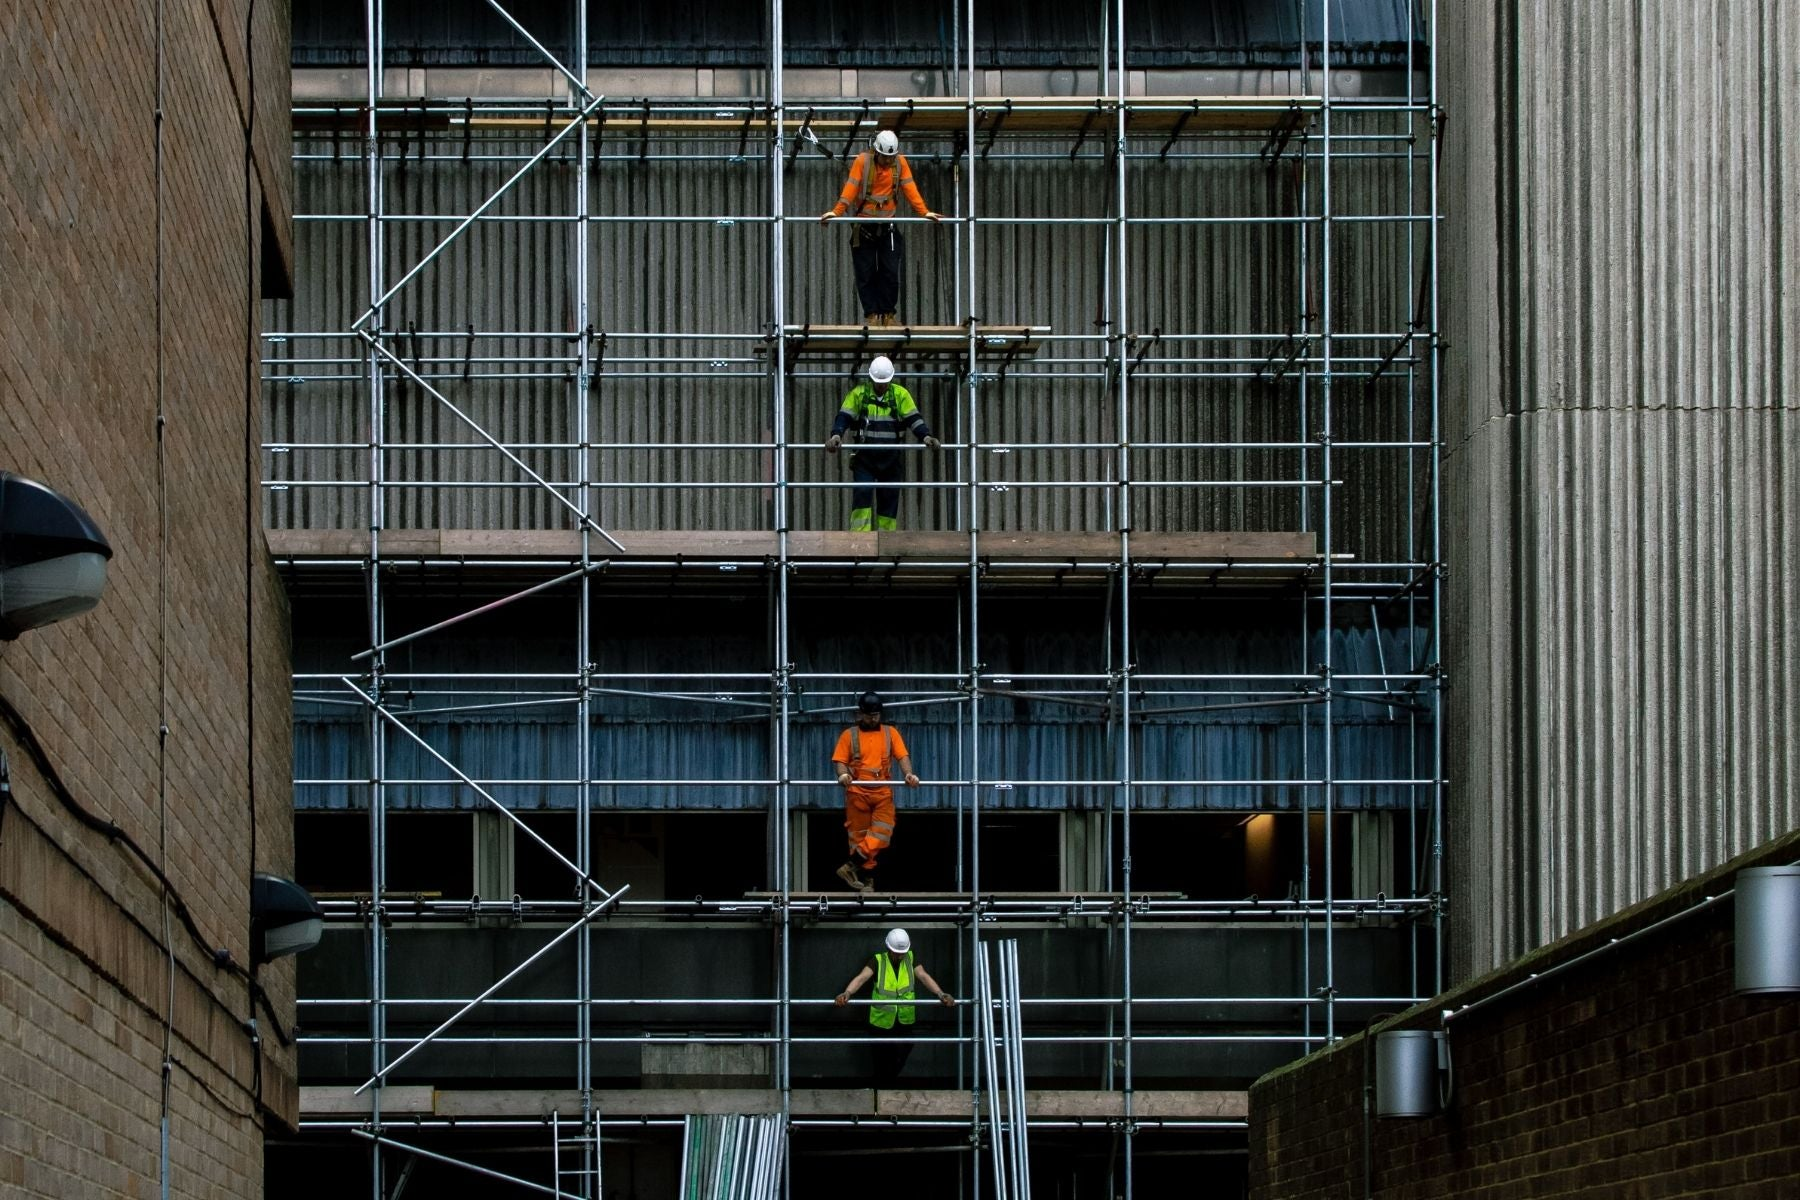 fall protection program requirements, workers on scaffolding